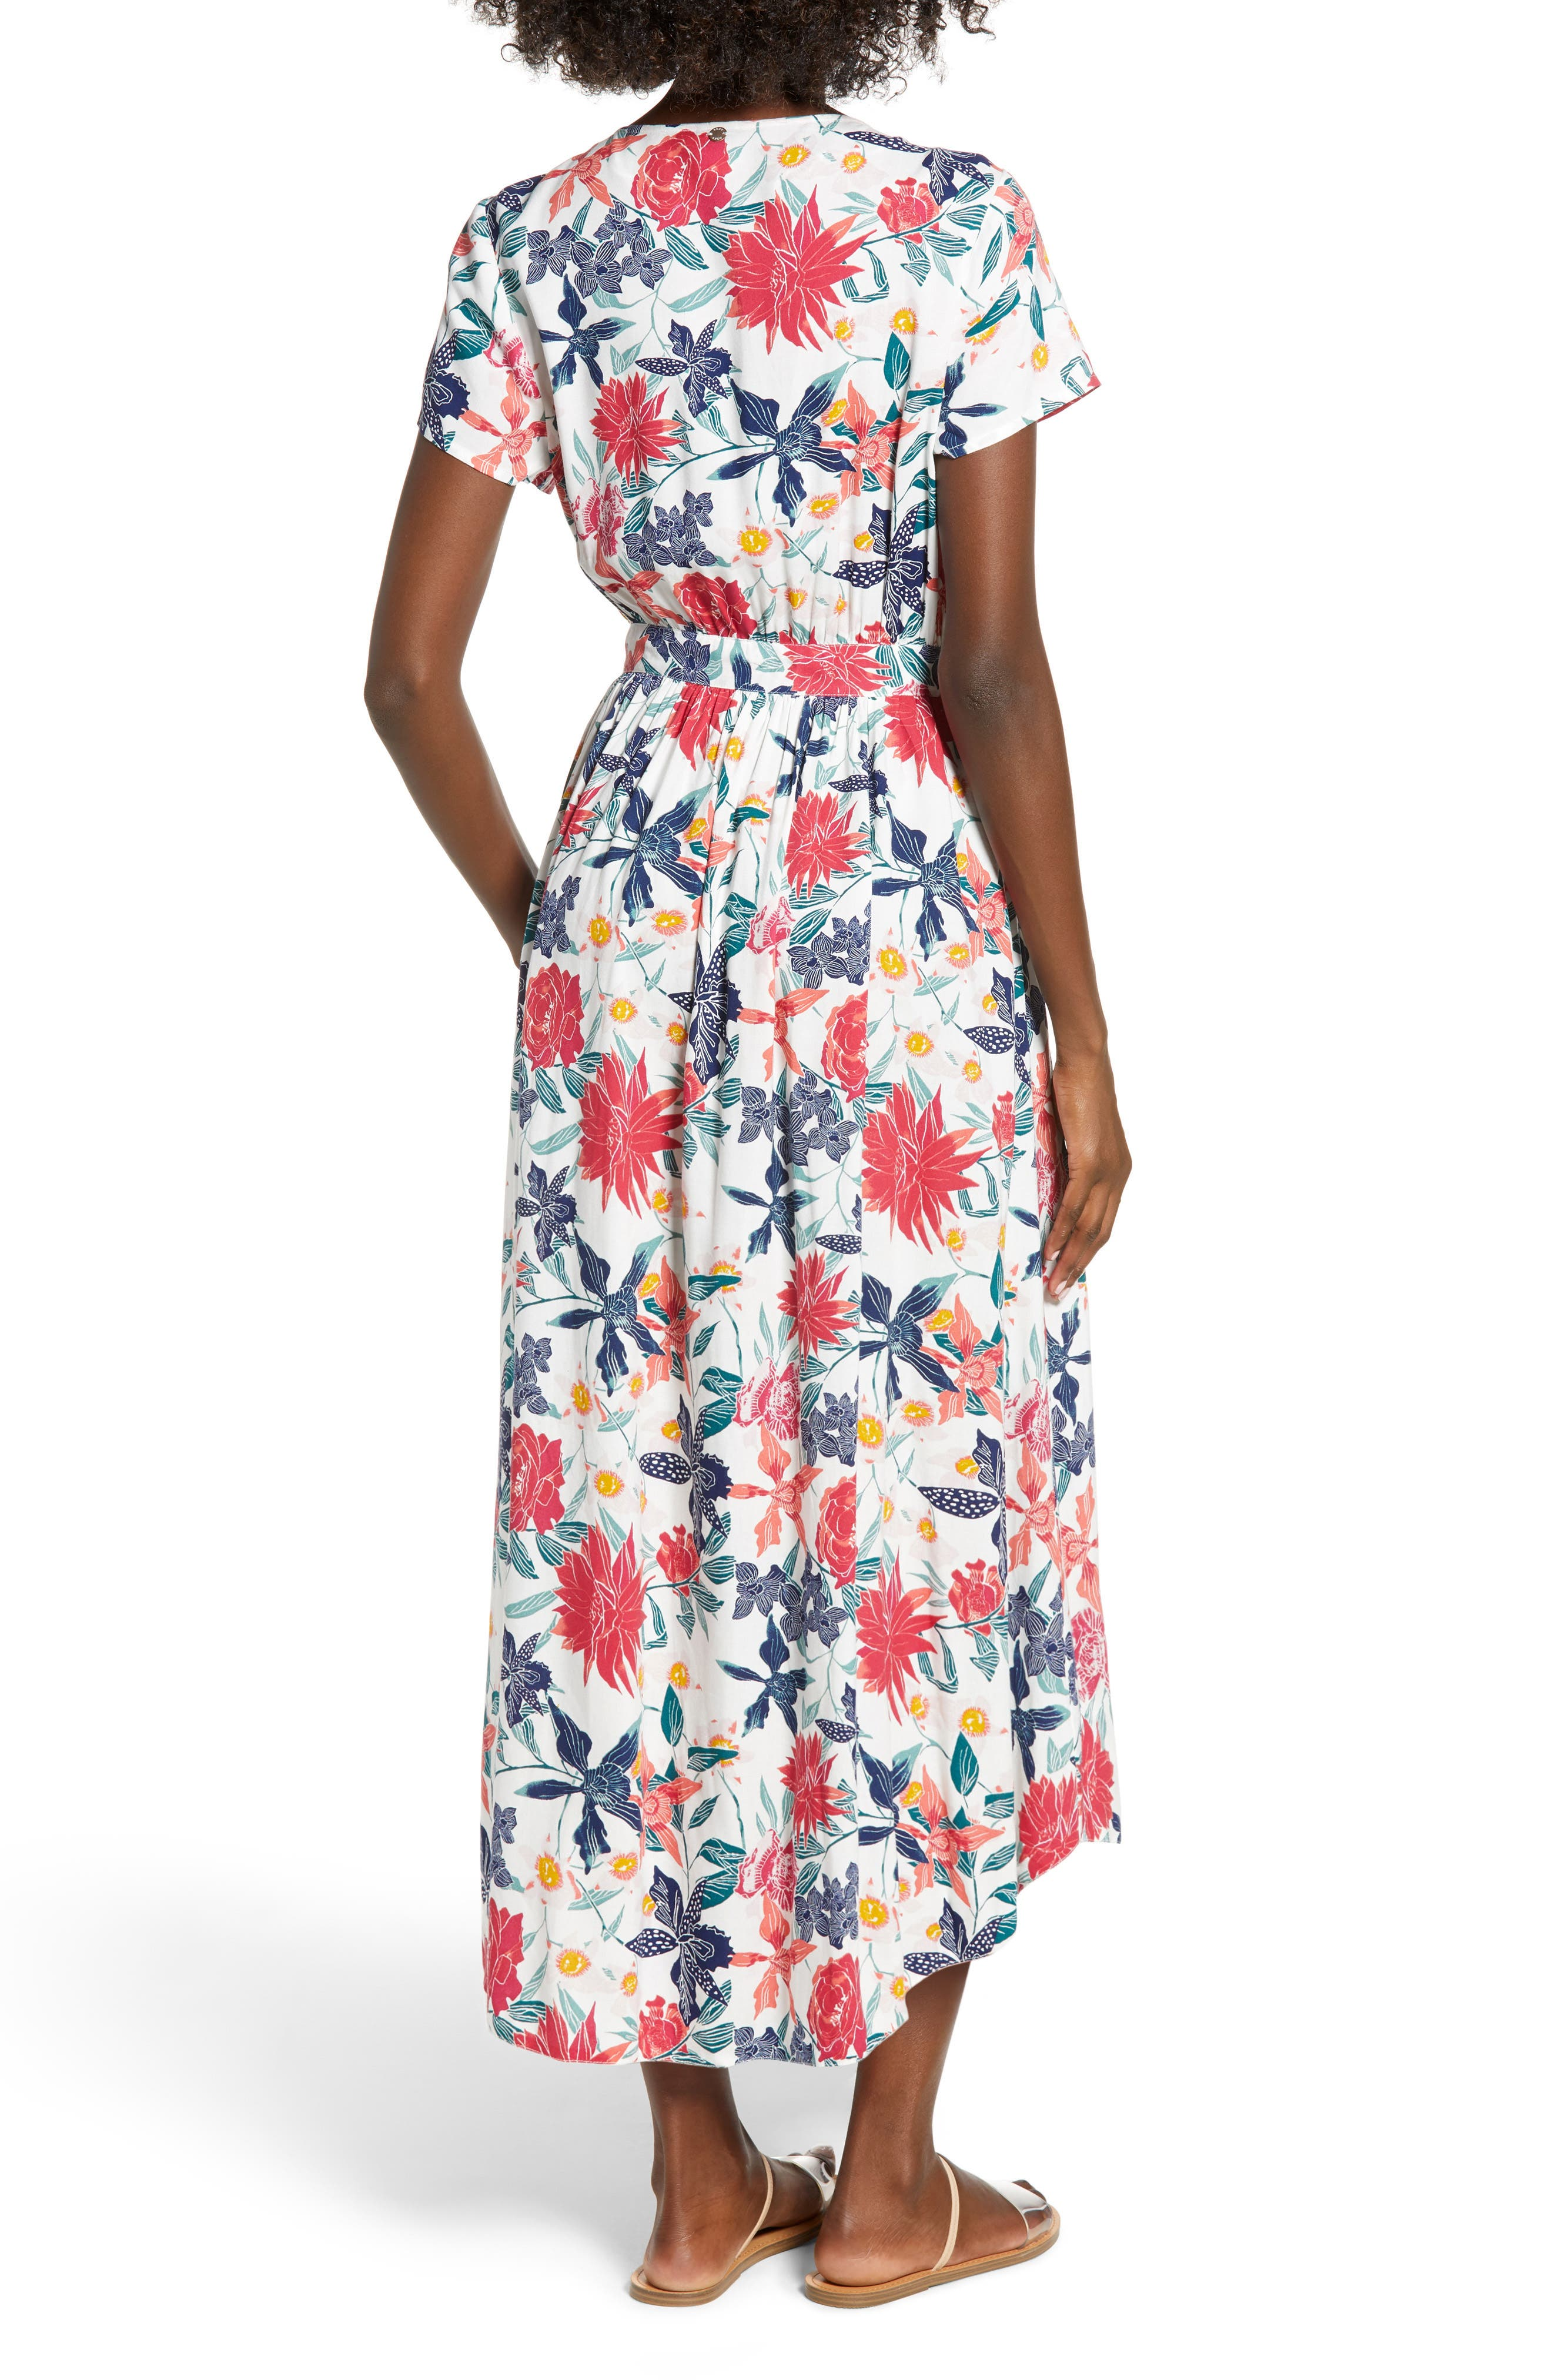 District Nights Floral Print Dress,                             Alternate thumbnail 2, color,                             MARSHMALLOW TALLOWS